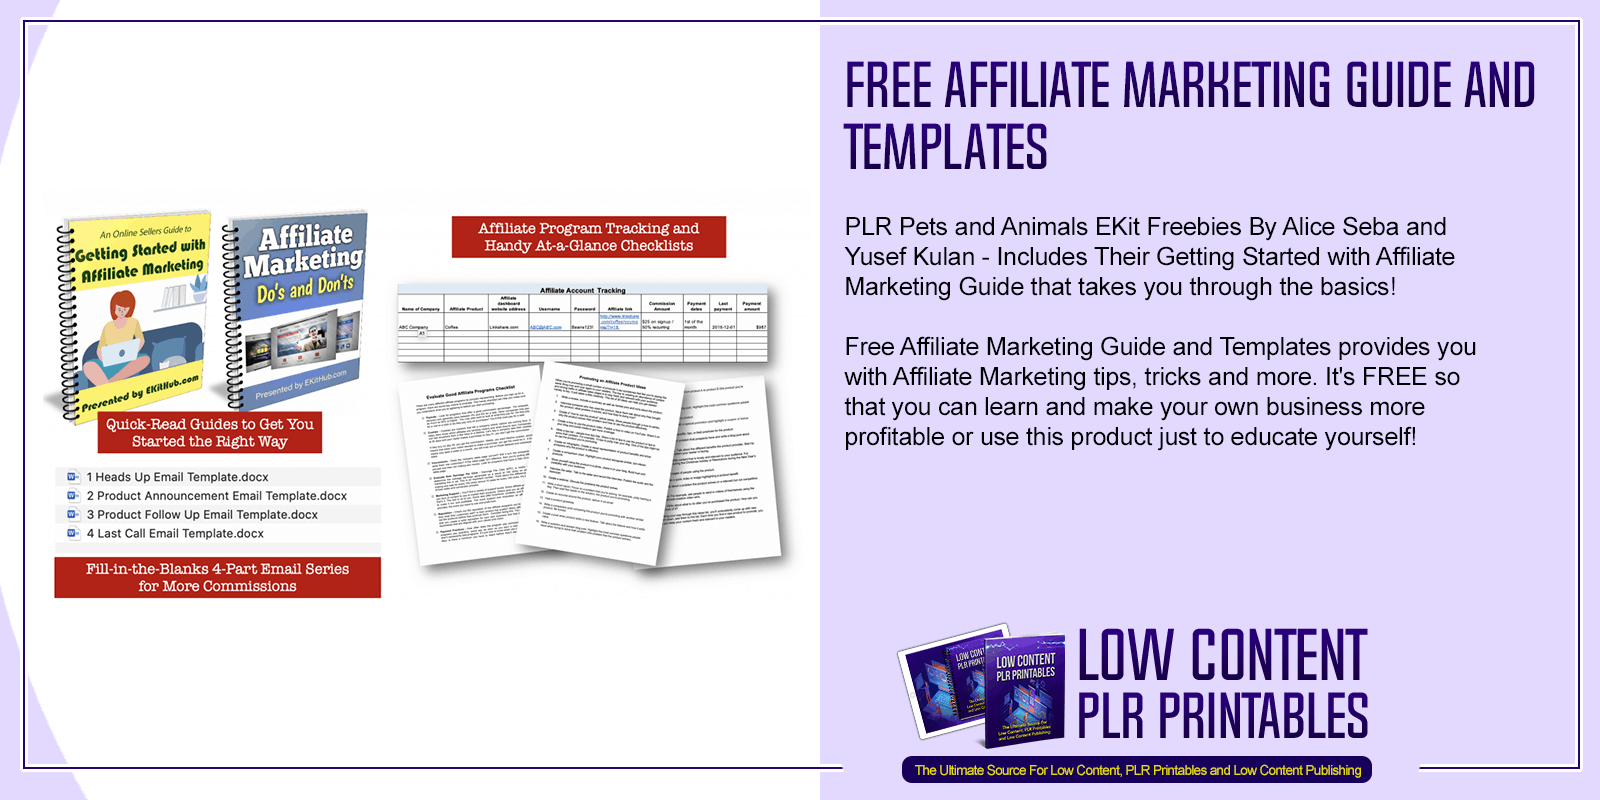 Free Affiliate Marketing Guide and Templates